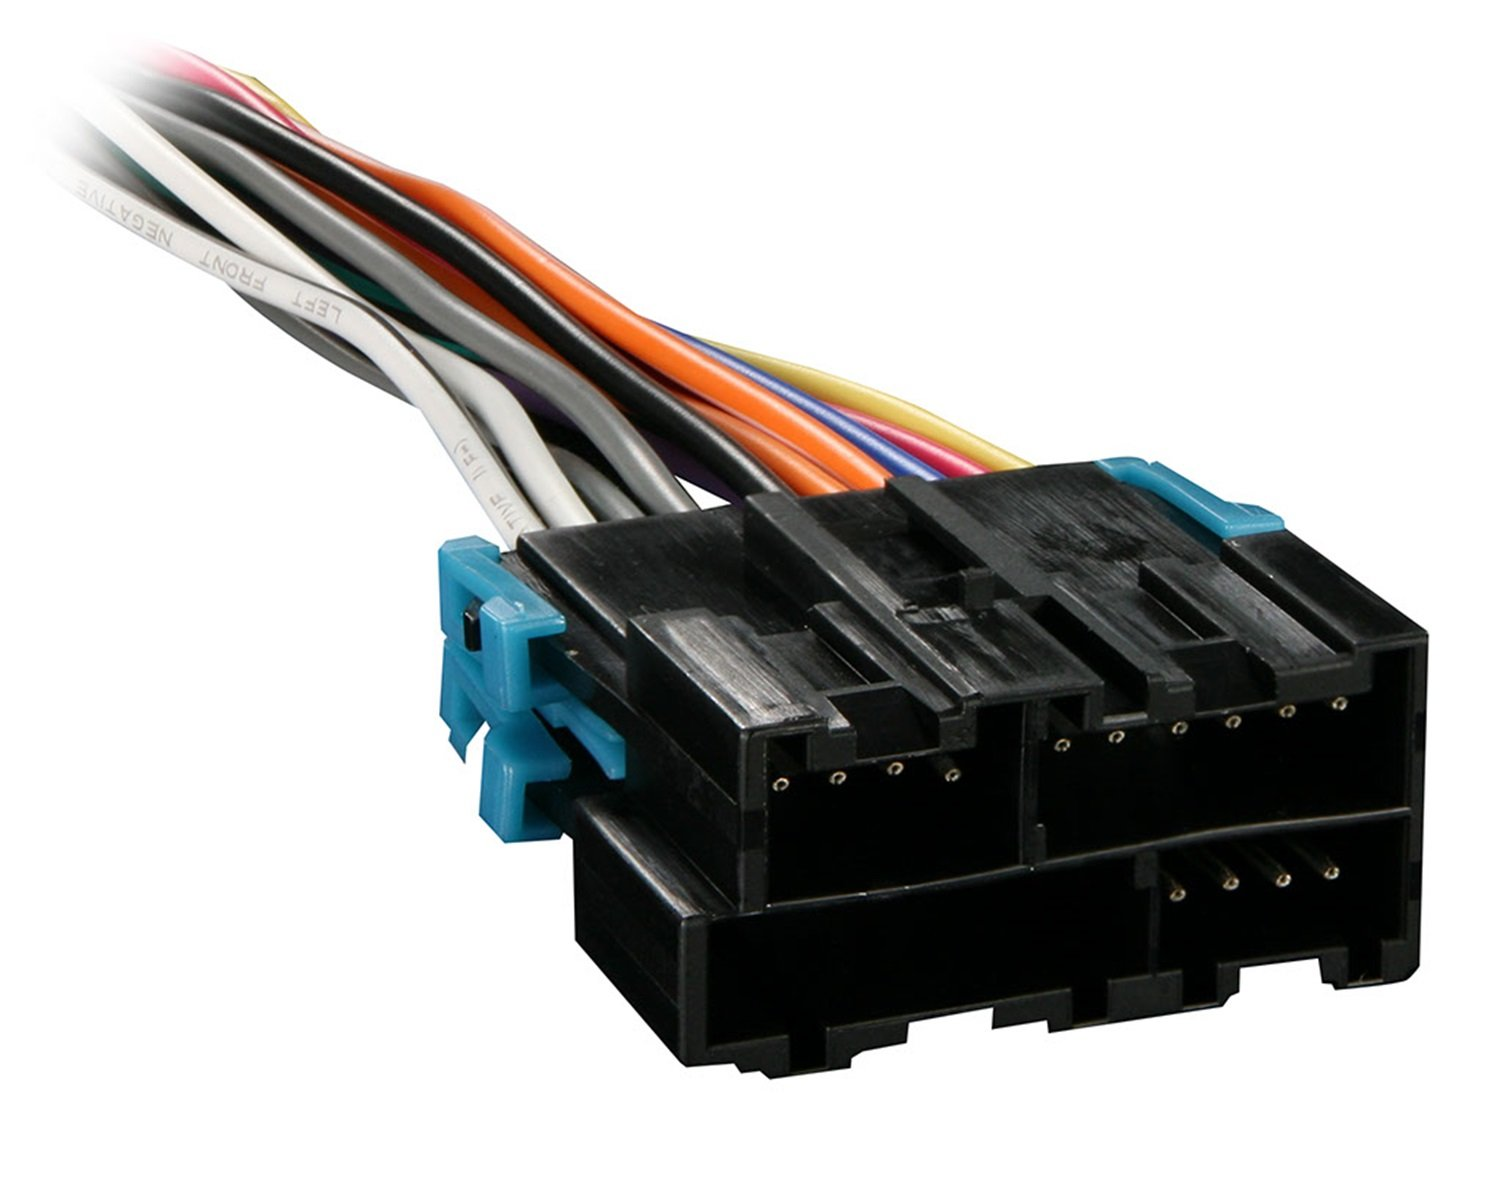 61 CwjZt1hL._SL1500_ radio wiring harnesses amazon com Sony Car Stereo Wiring Harness at nearapp.co